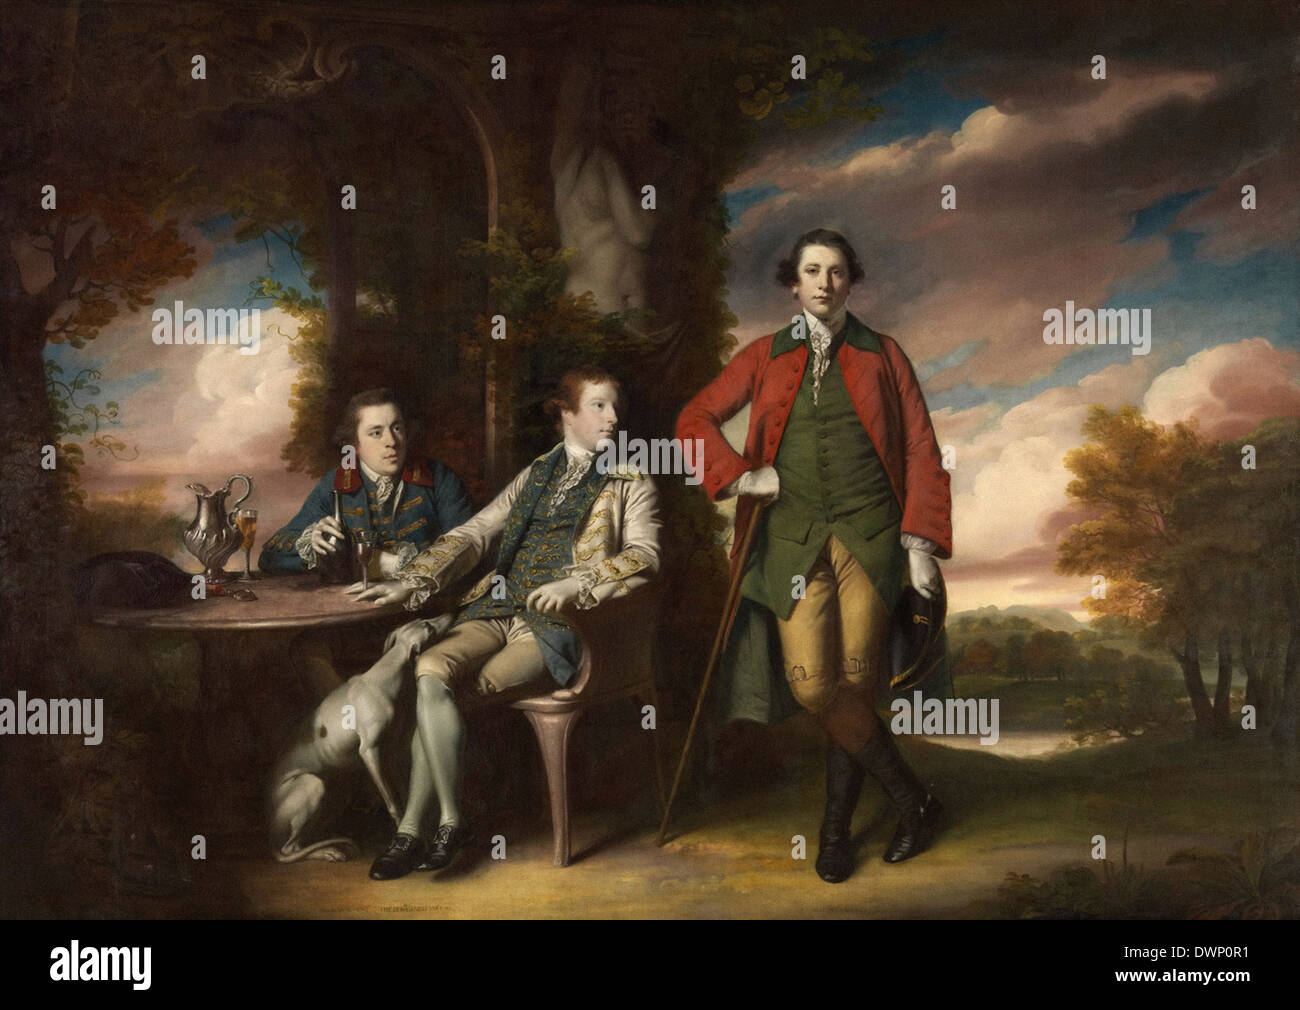 Joshua Reynolds - El Honorable Henry Fane con Inigo Jones y Charles Blair Imagen De Stock